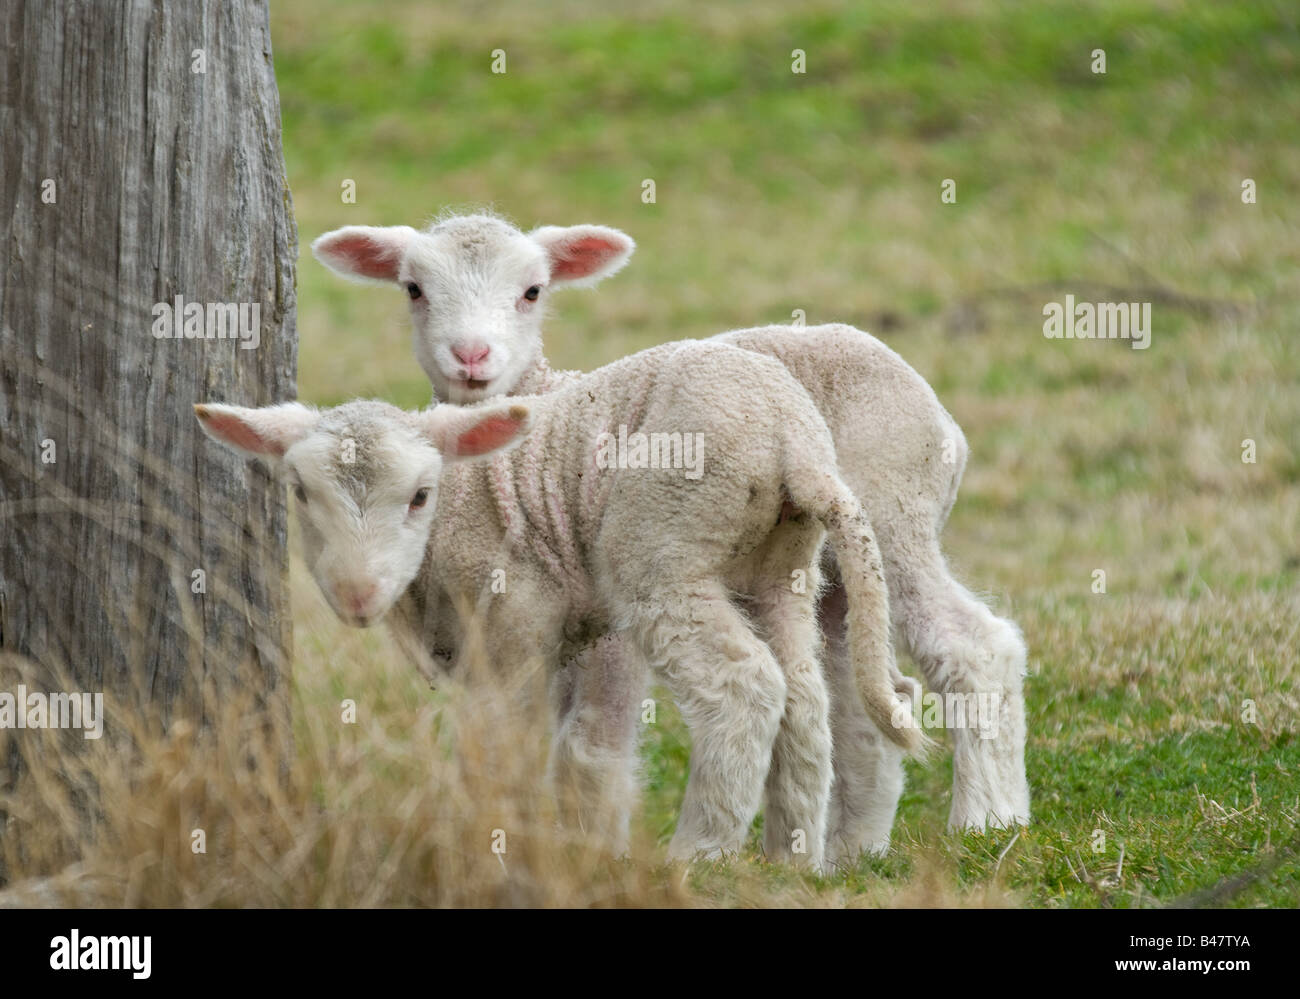 two cute and adorable shy lambs on the farm - Stock Image